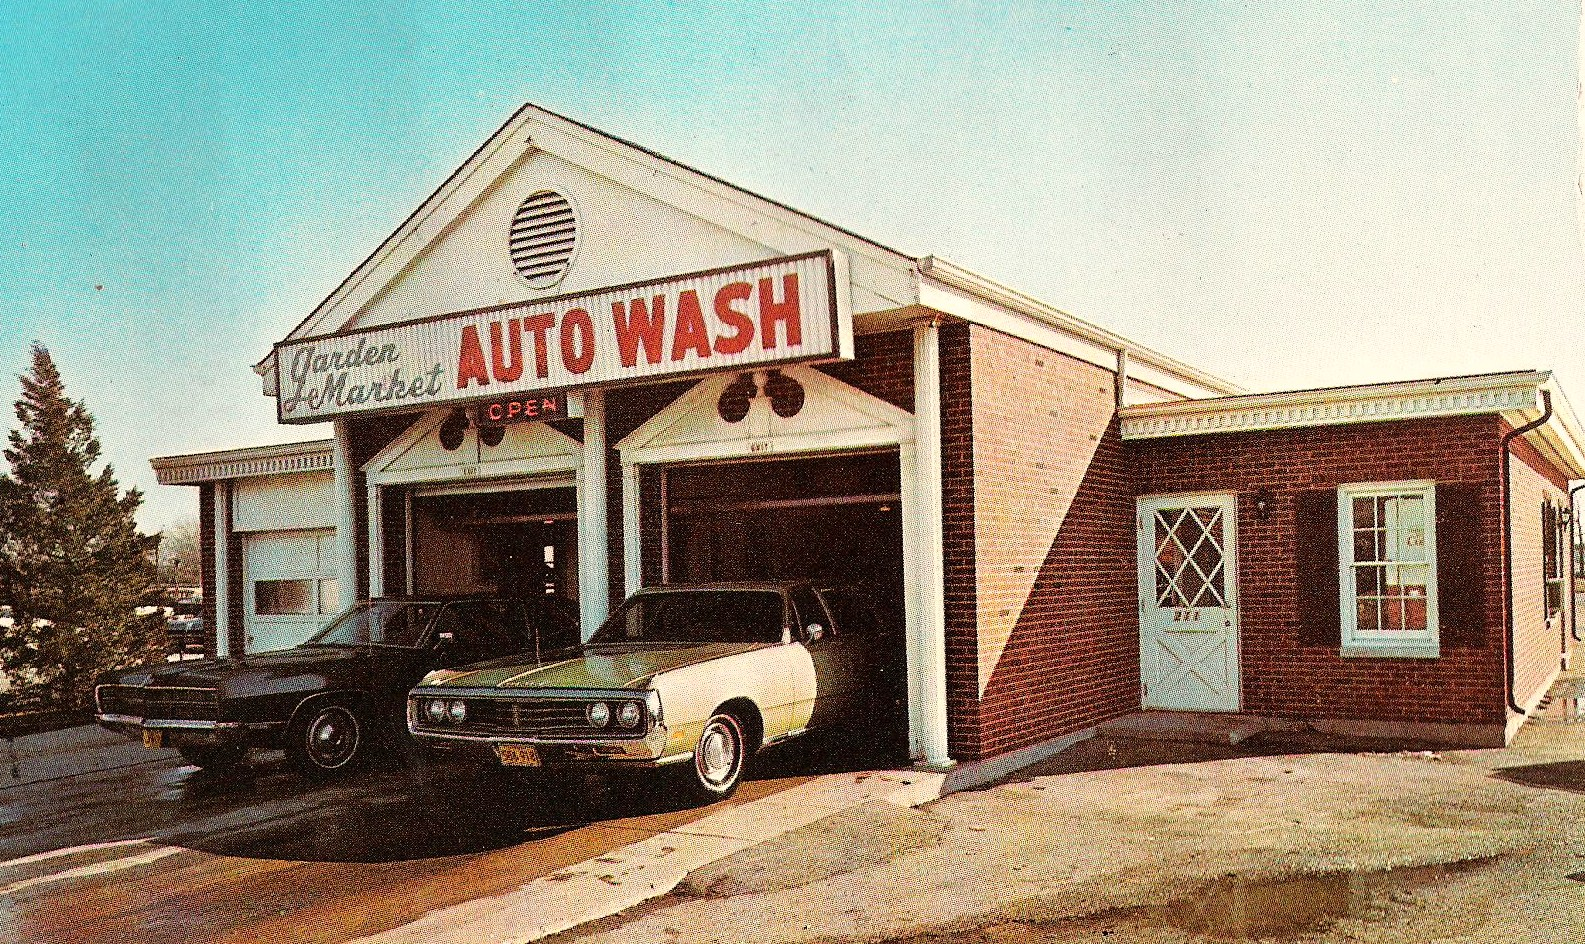 Heritage Car Wash: Remember These Old Car Washes?